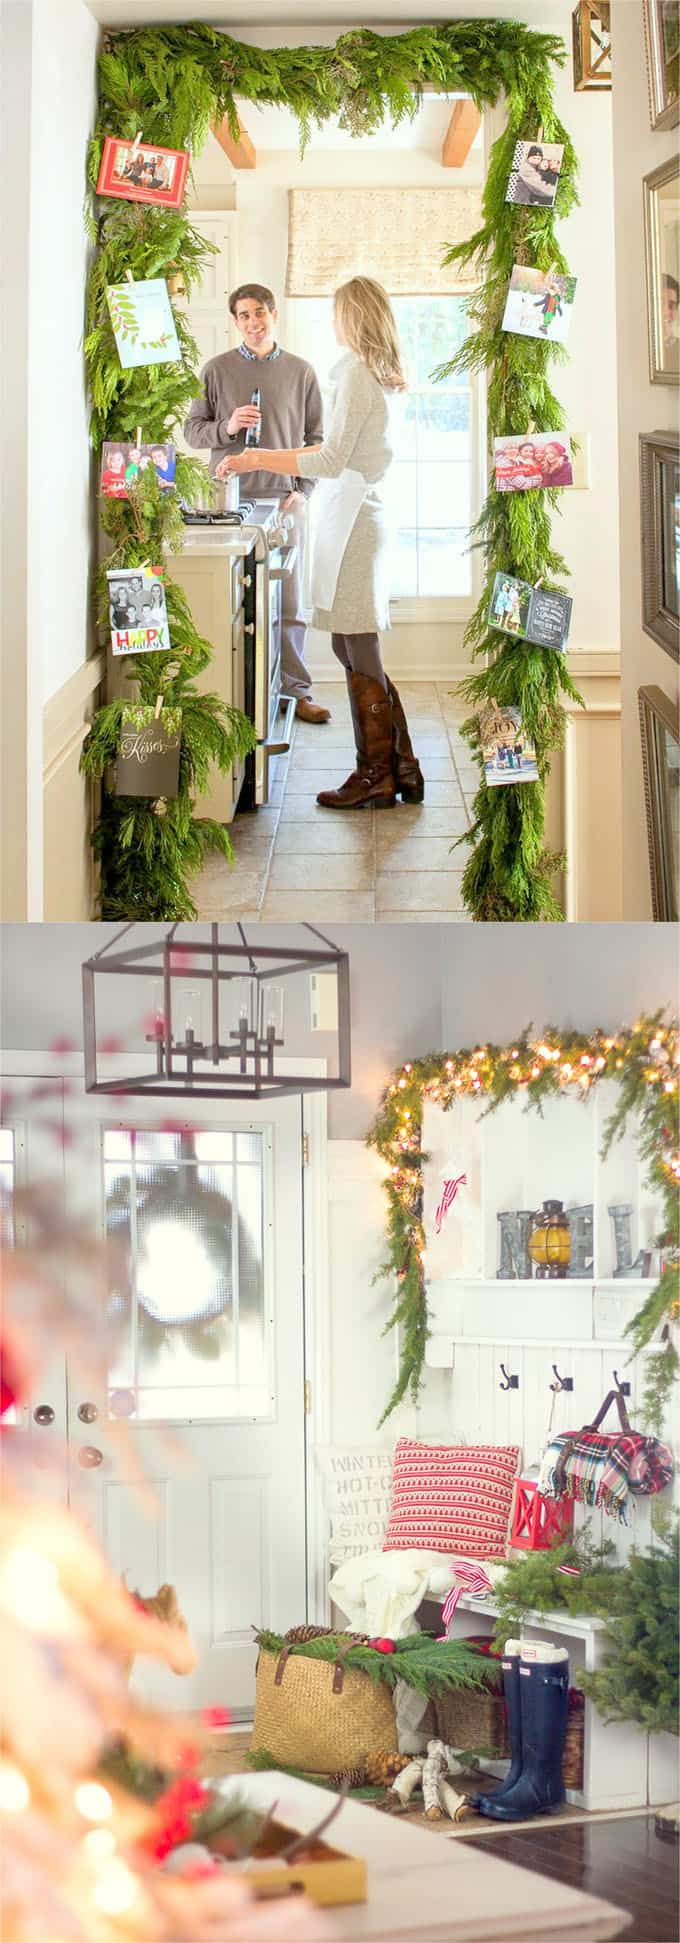 Create An Inviting Christmas Entryway With Garlands.